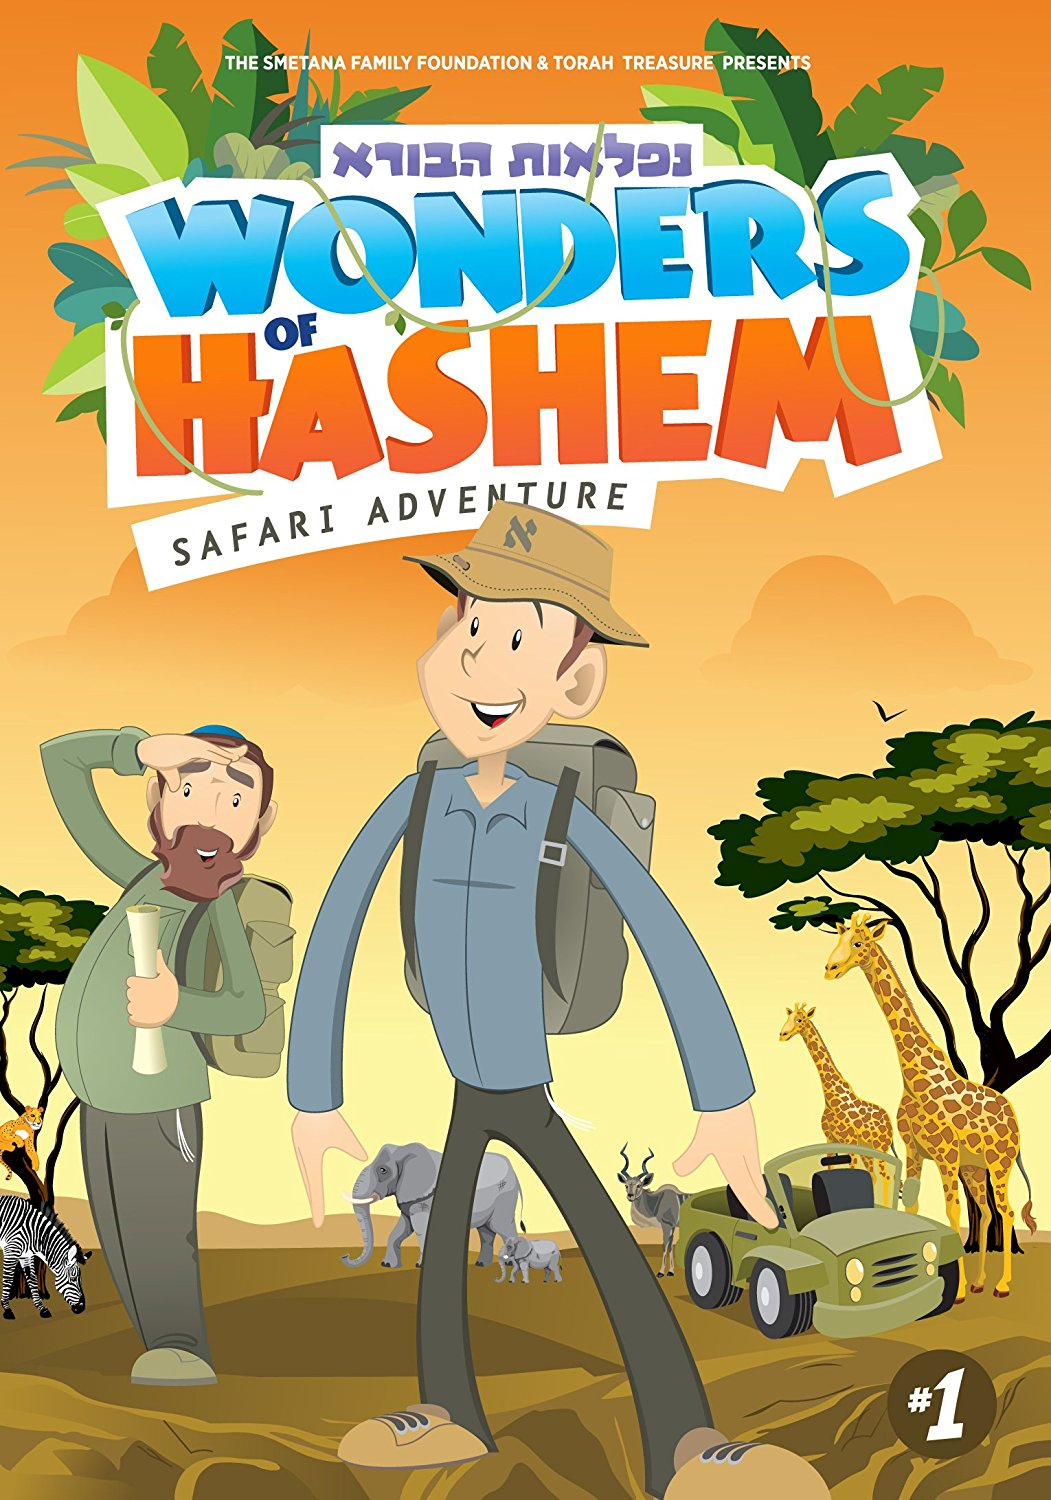 Wonders of Hashem - Safari Adventure - DVD